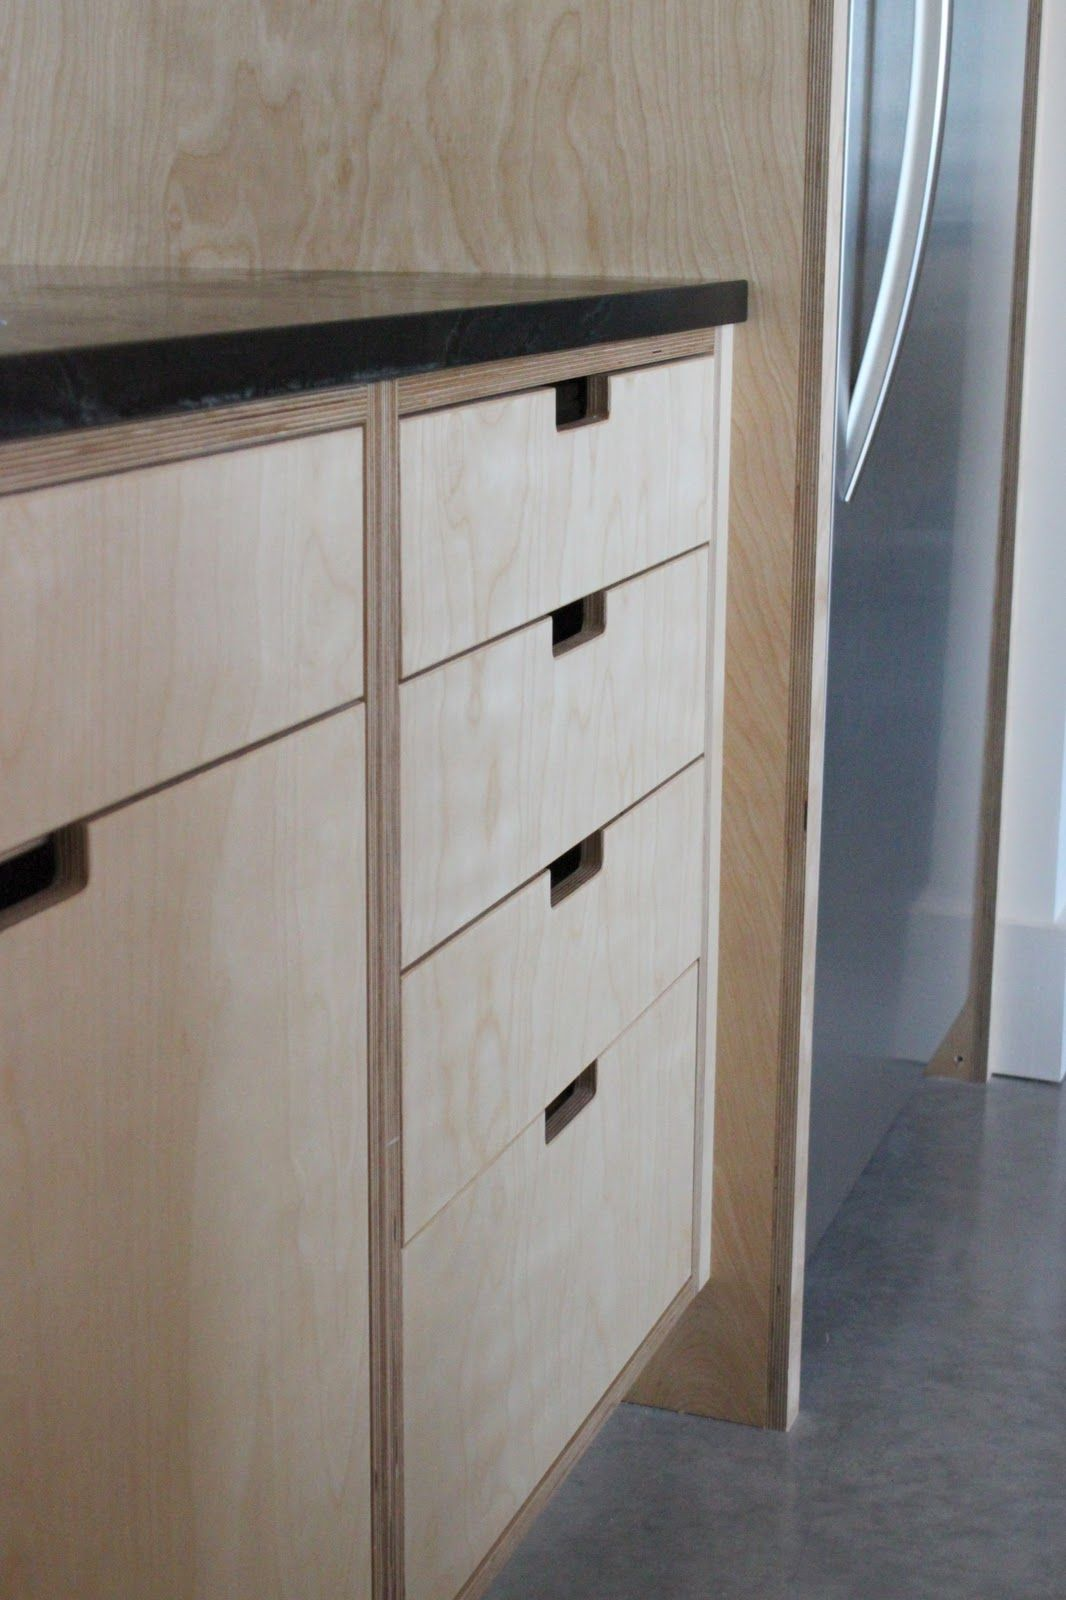 Kastsysteem Ikea Excellent The Little Forest House Kitchen Cabinets With